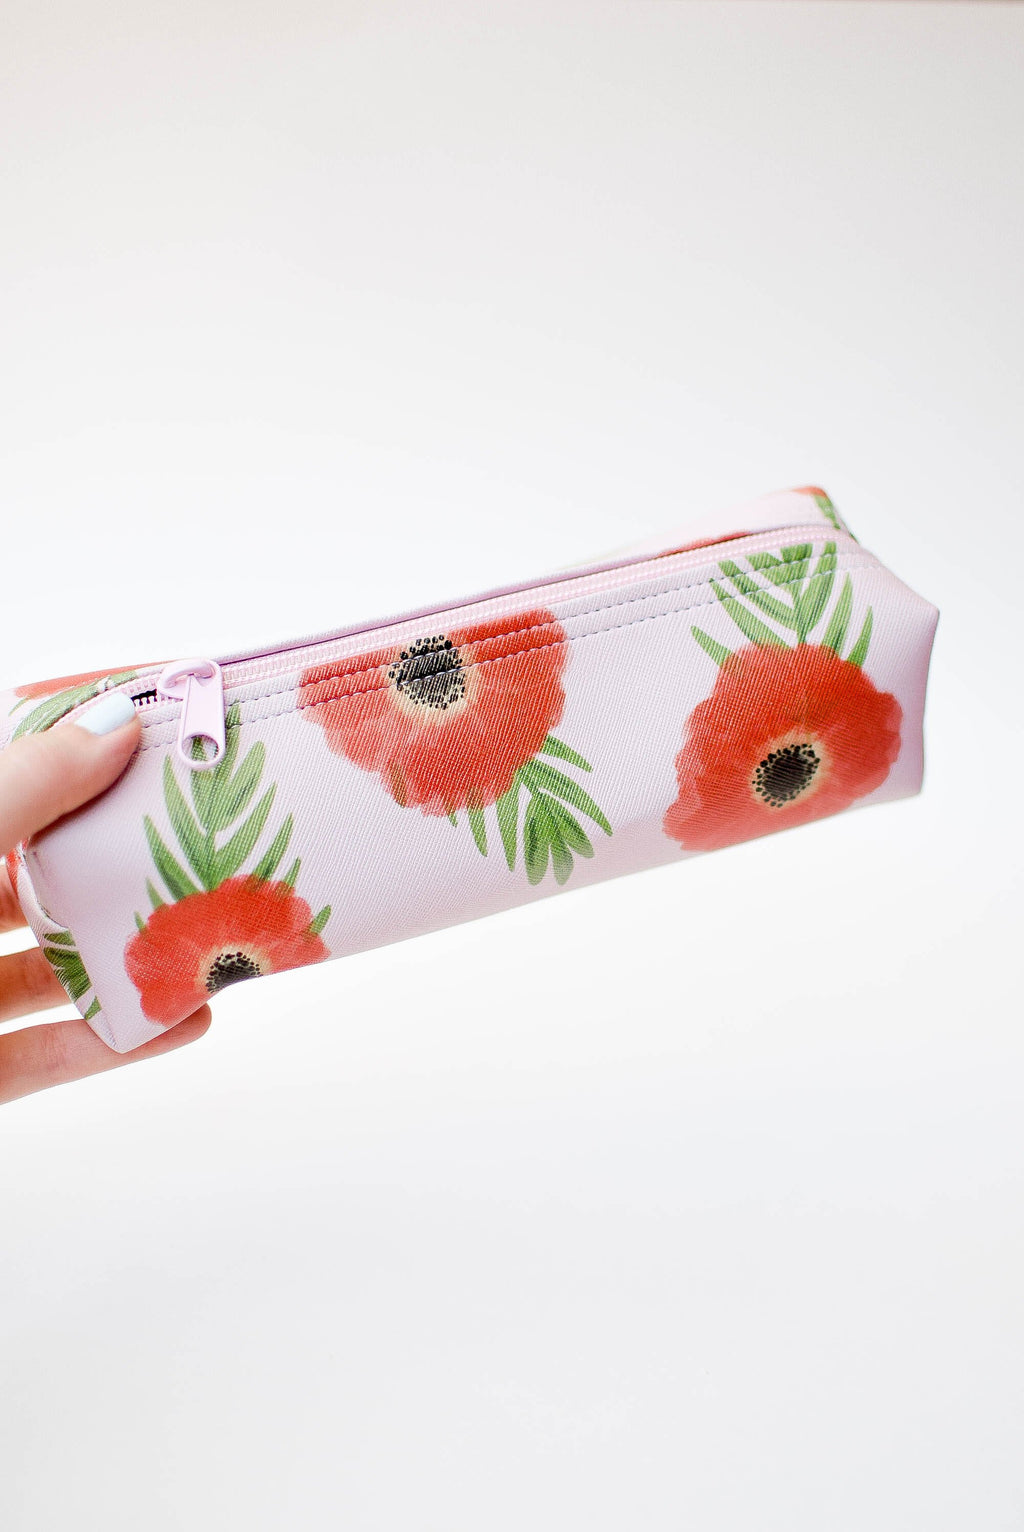 Poppies Mini Makeup Pouch - Mint Pop Shop